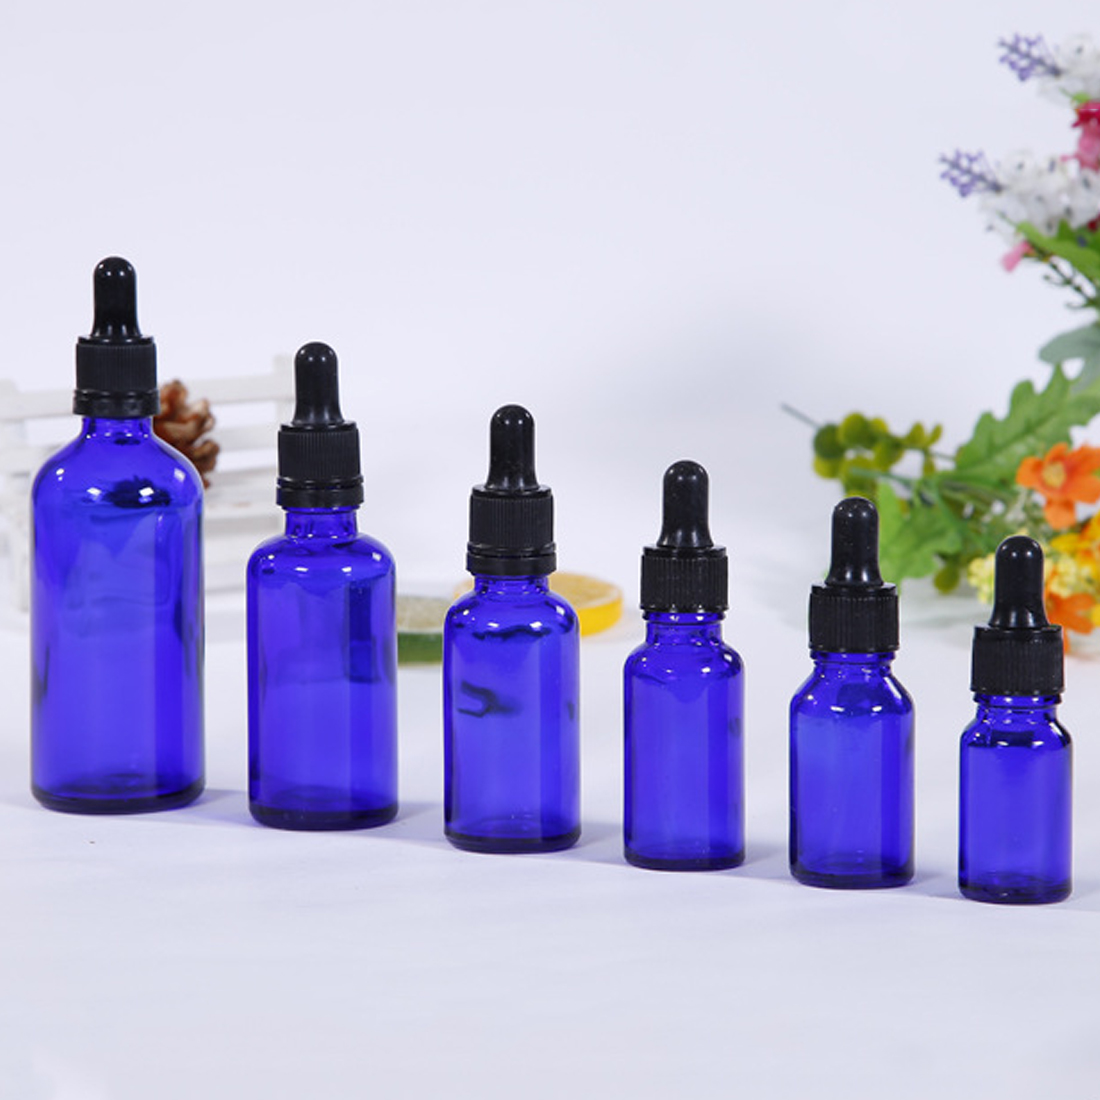 5/10/15/20/30/50/100ml Blue Glass Liquid Reagent Pipette Bottle With Eye Dropper Drop Aromatherapy Oil Spray Refillable Bottles